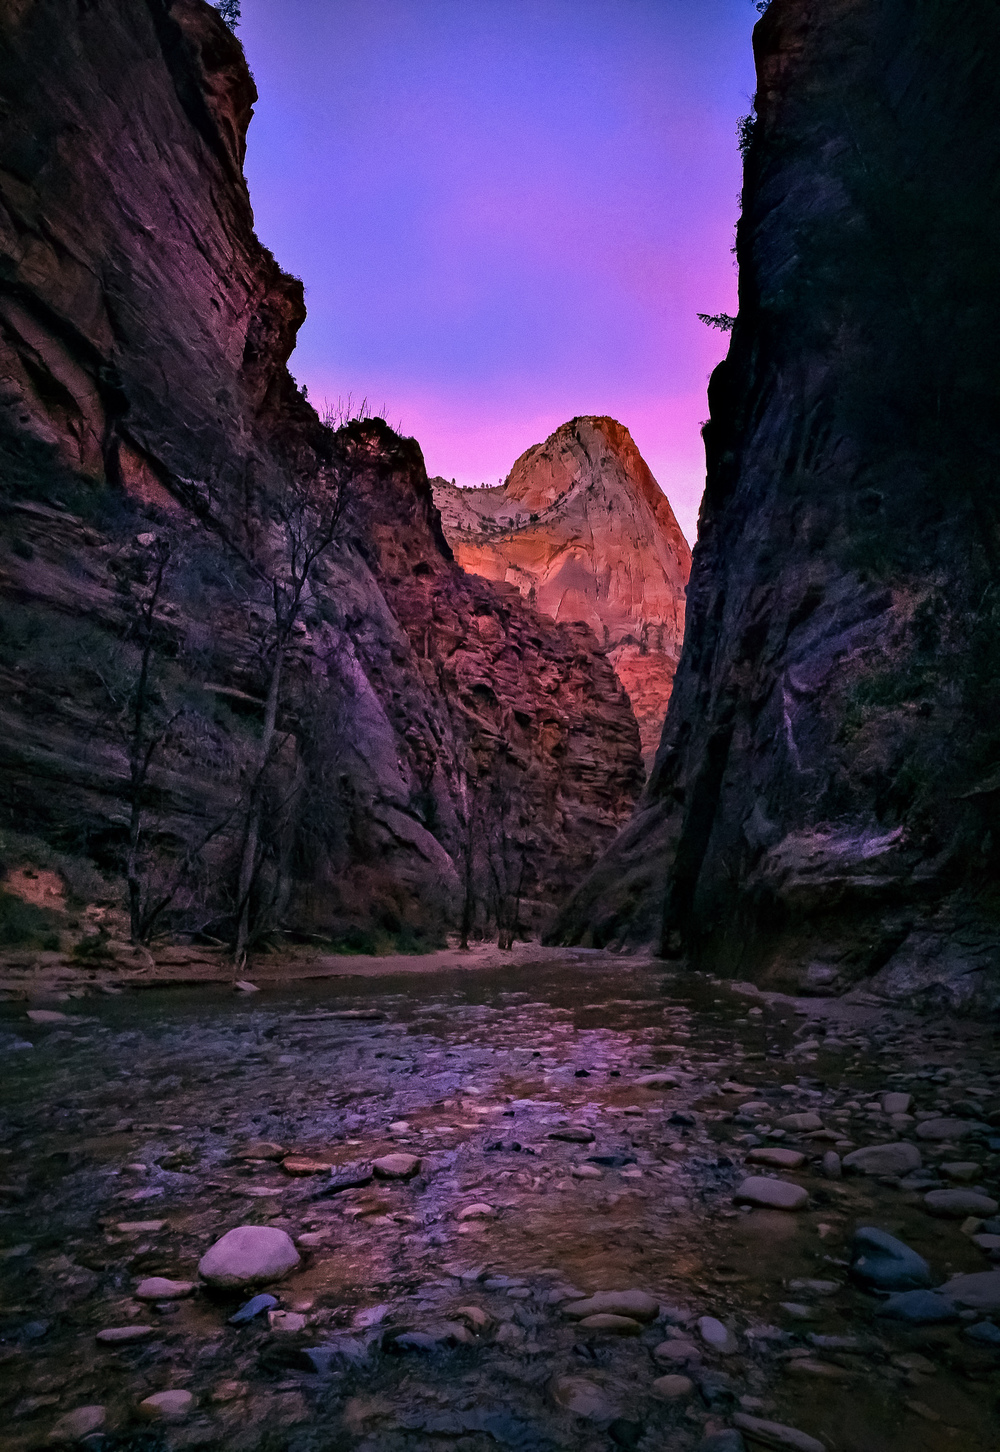 The Narrows at Zion National Park.Shot with the iPhone 5S in pano mode, giving a needed wide angle view that the X100T won't deliver. A Fuji XF10-24 lens would have covered this well, but that is a much bulkier setup than an X100t.[ iPhone 5S,f/2.2, 1/120s, ISO 320 ]